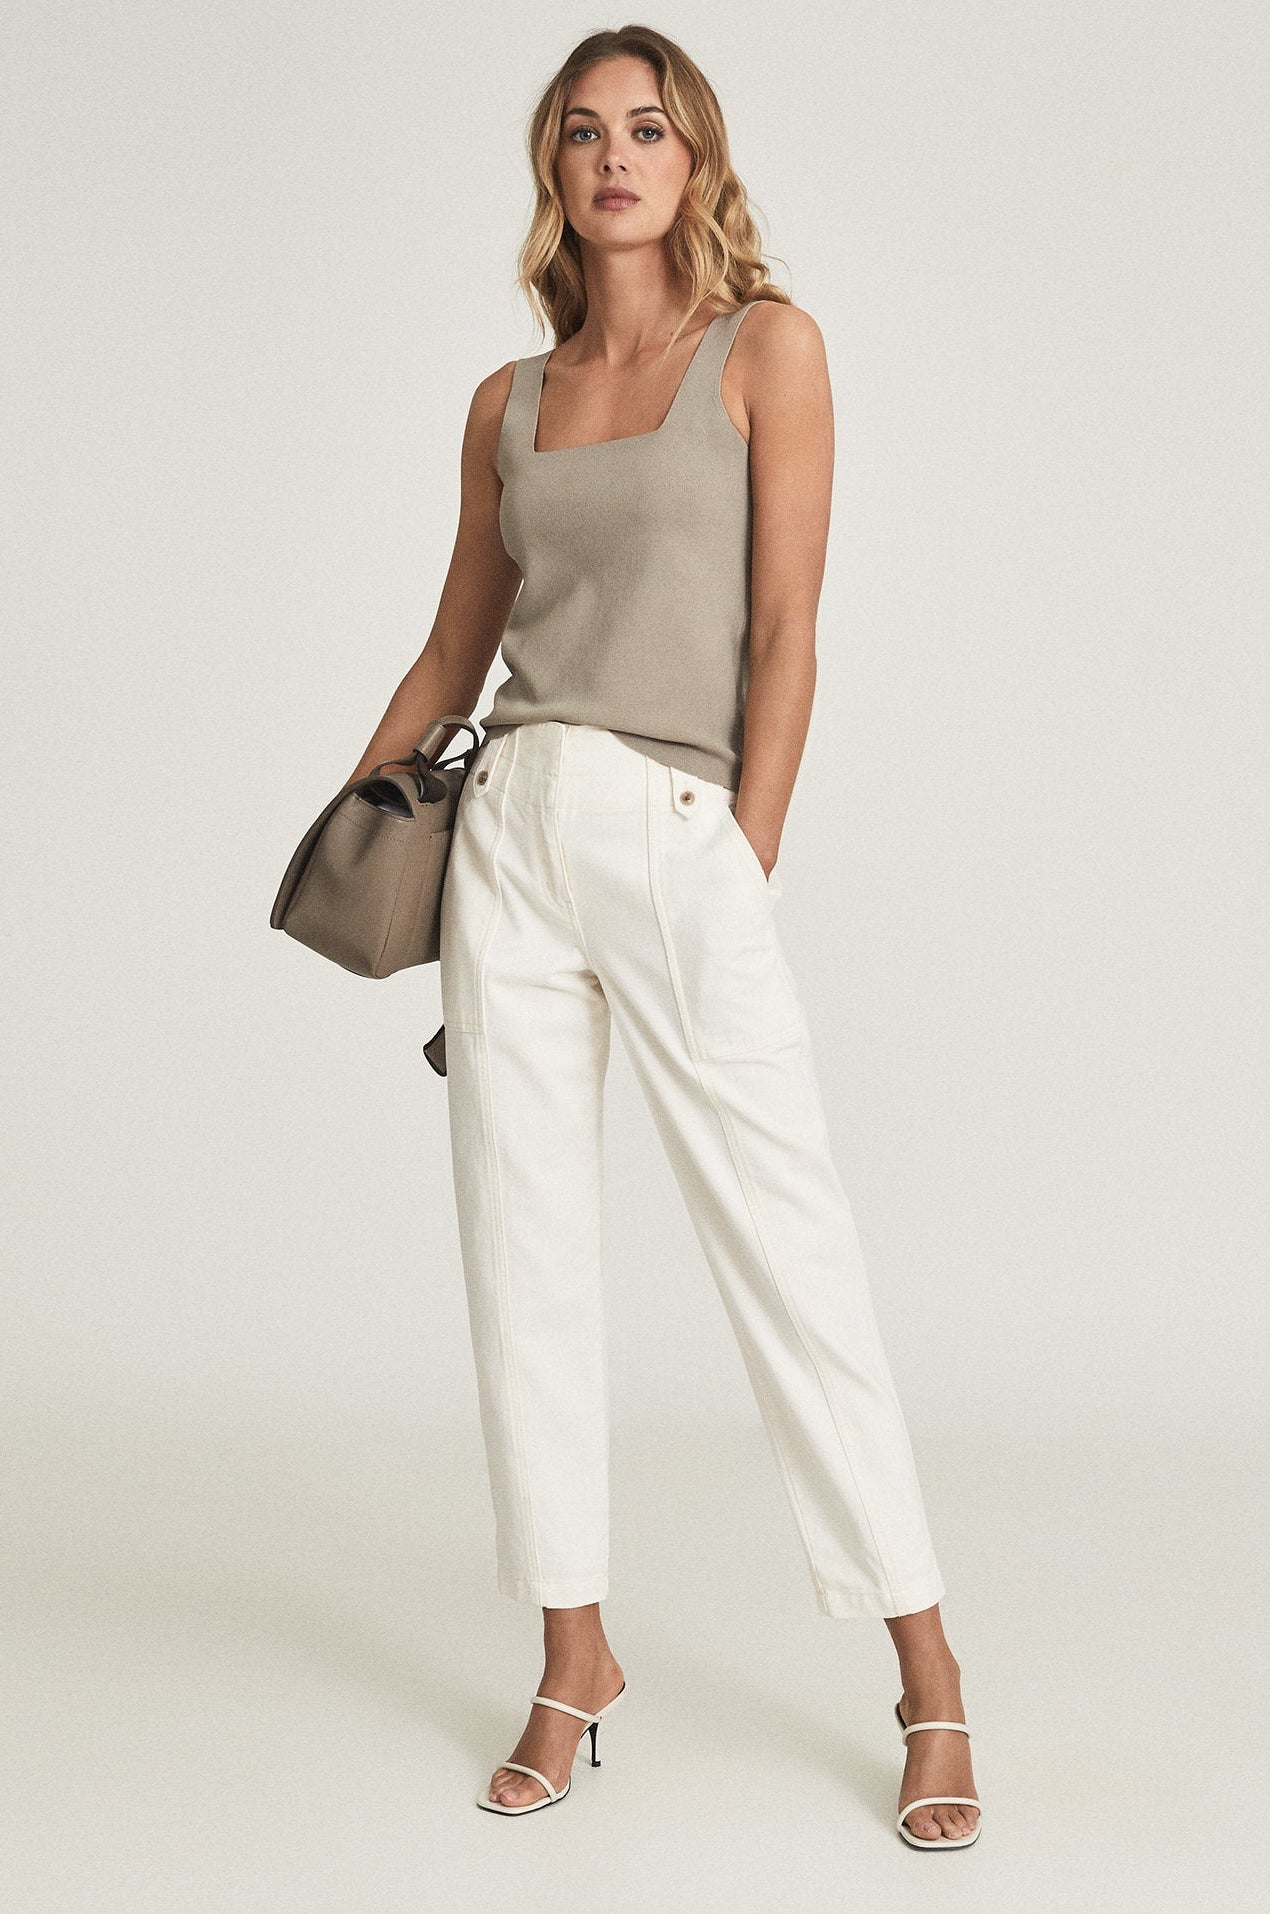 Smart casual outfits from Reiss